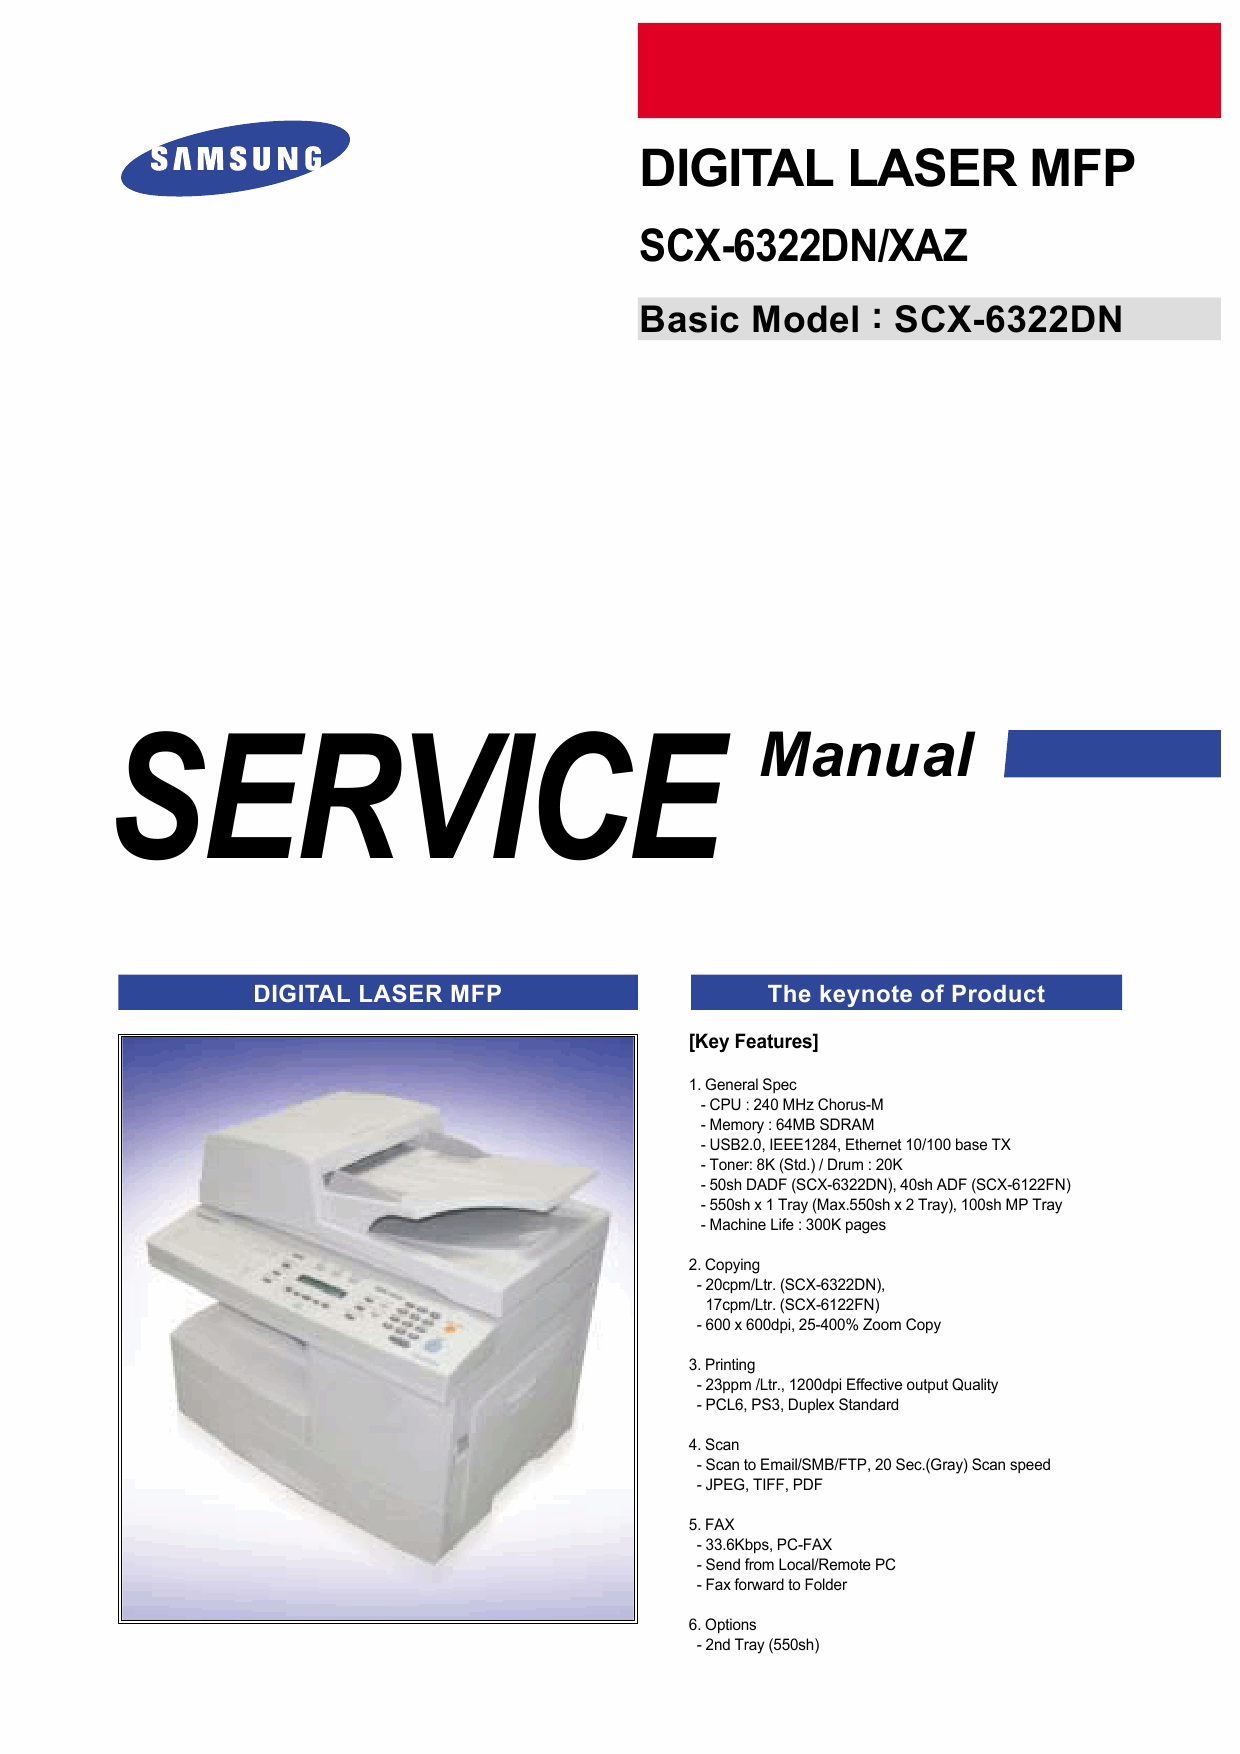 Samsung Digital-Laser-MFP SCX-6322DN XAZ Parts and Service Manual-1